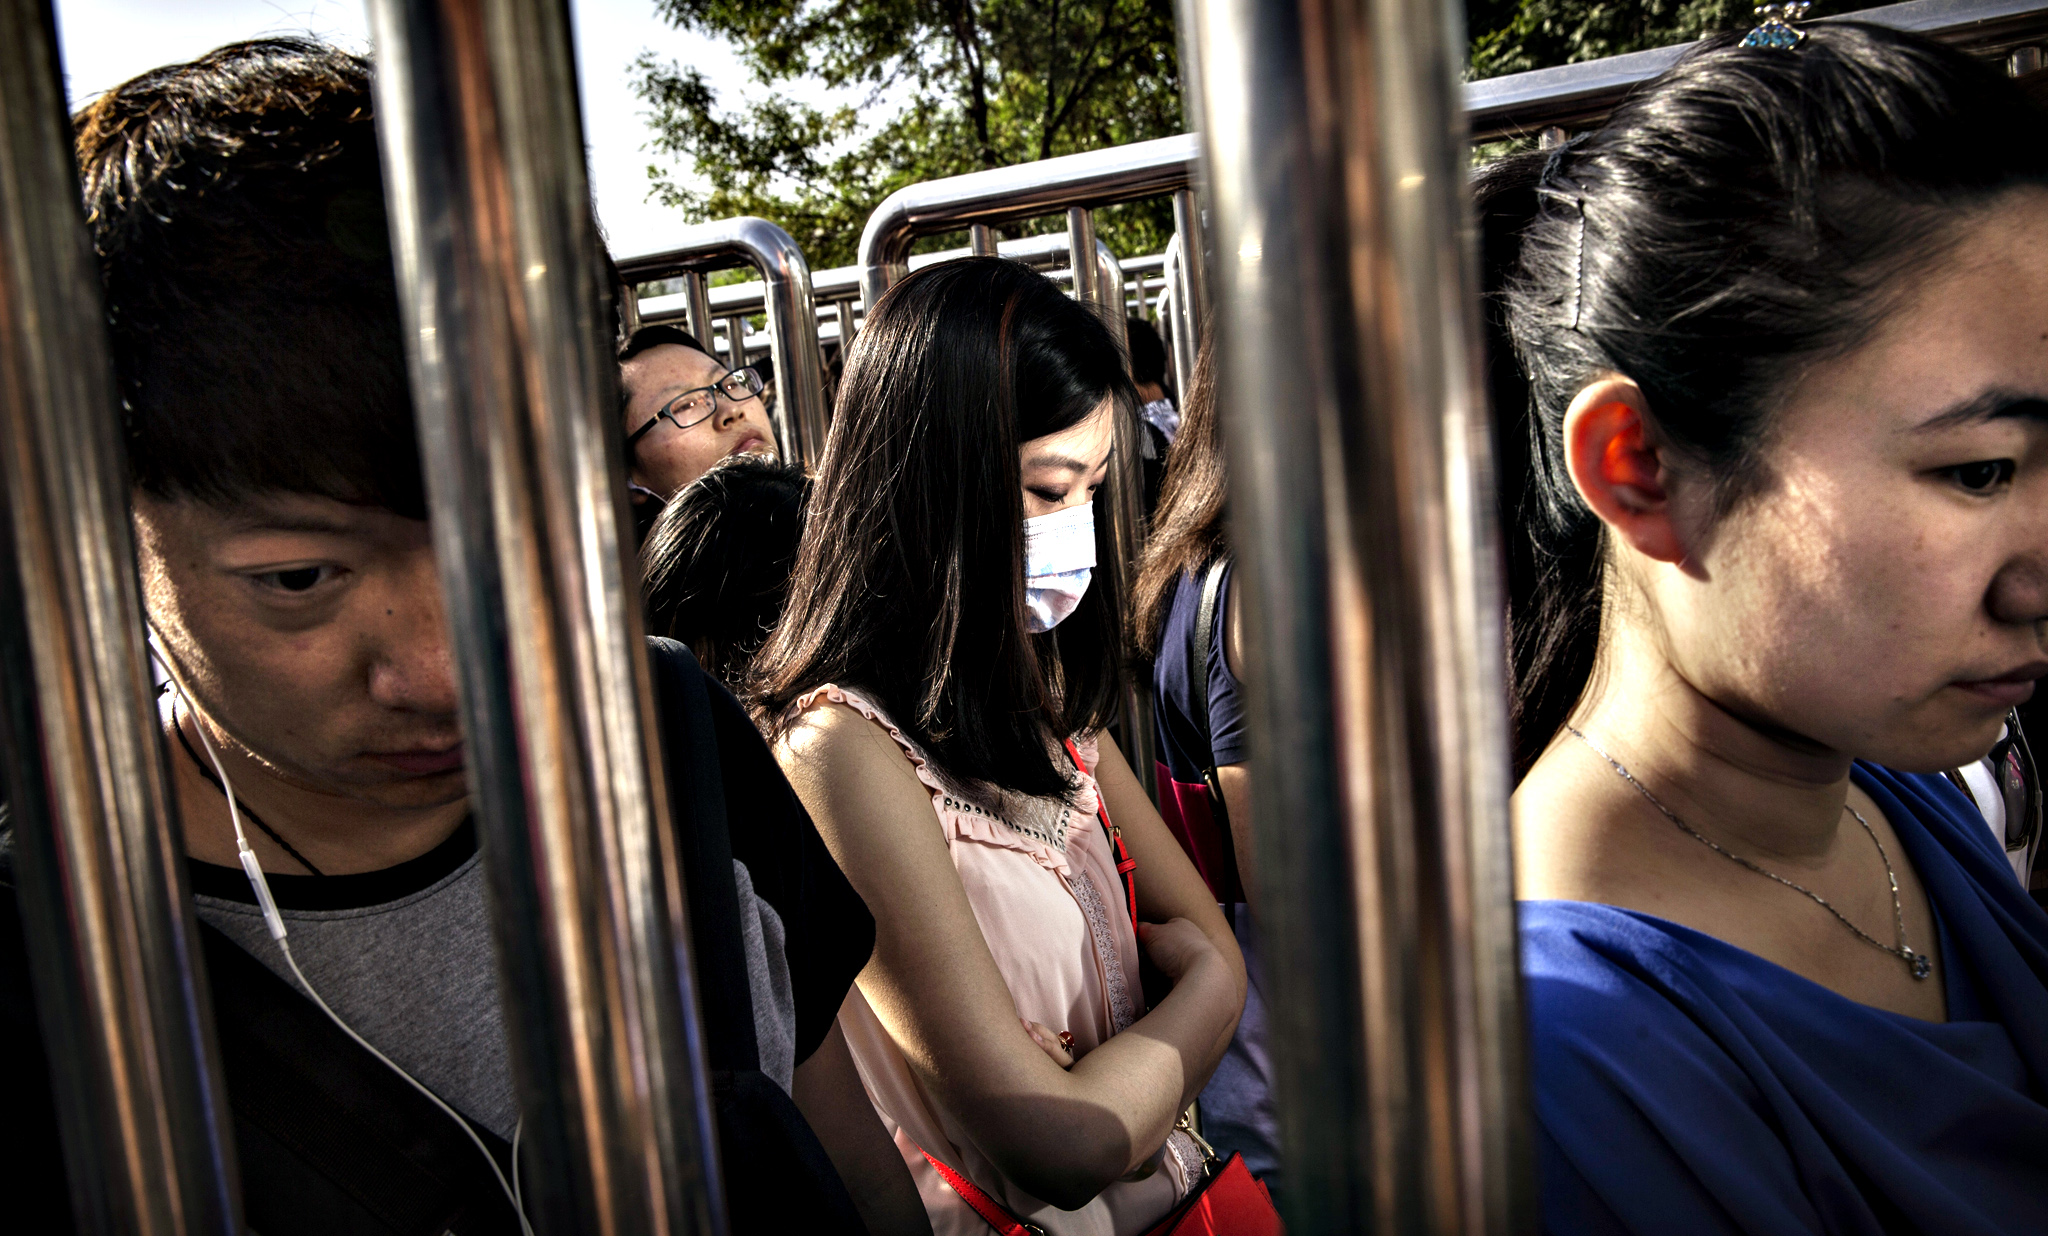 Chinese commuters line-up for a security check at a subway station on May 29, 2014 in Beijing, China. Authorities have increased security in various public locations after an attack left 31 dead in the restive Xinjiang Province last week.